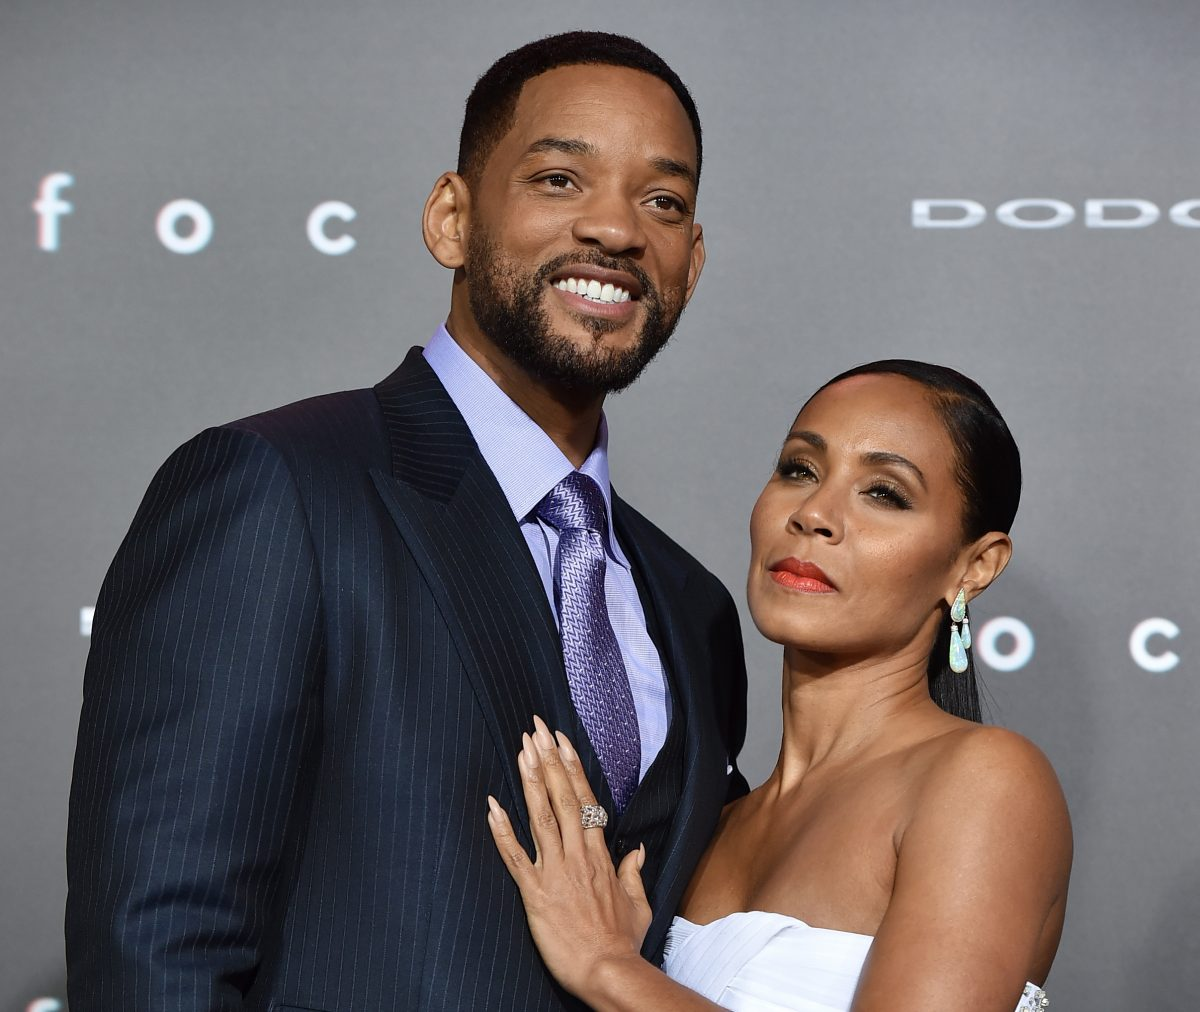 Will Smith and Jada Pinkett Smith posing at a film premiere in 2015.